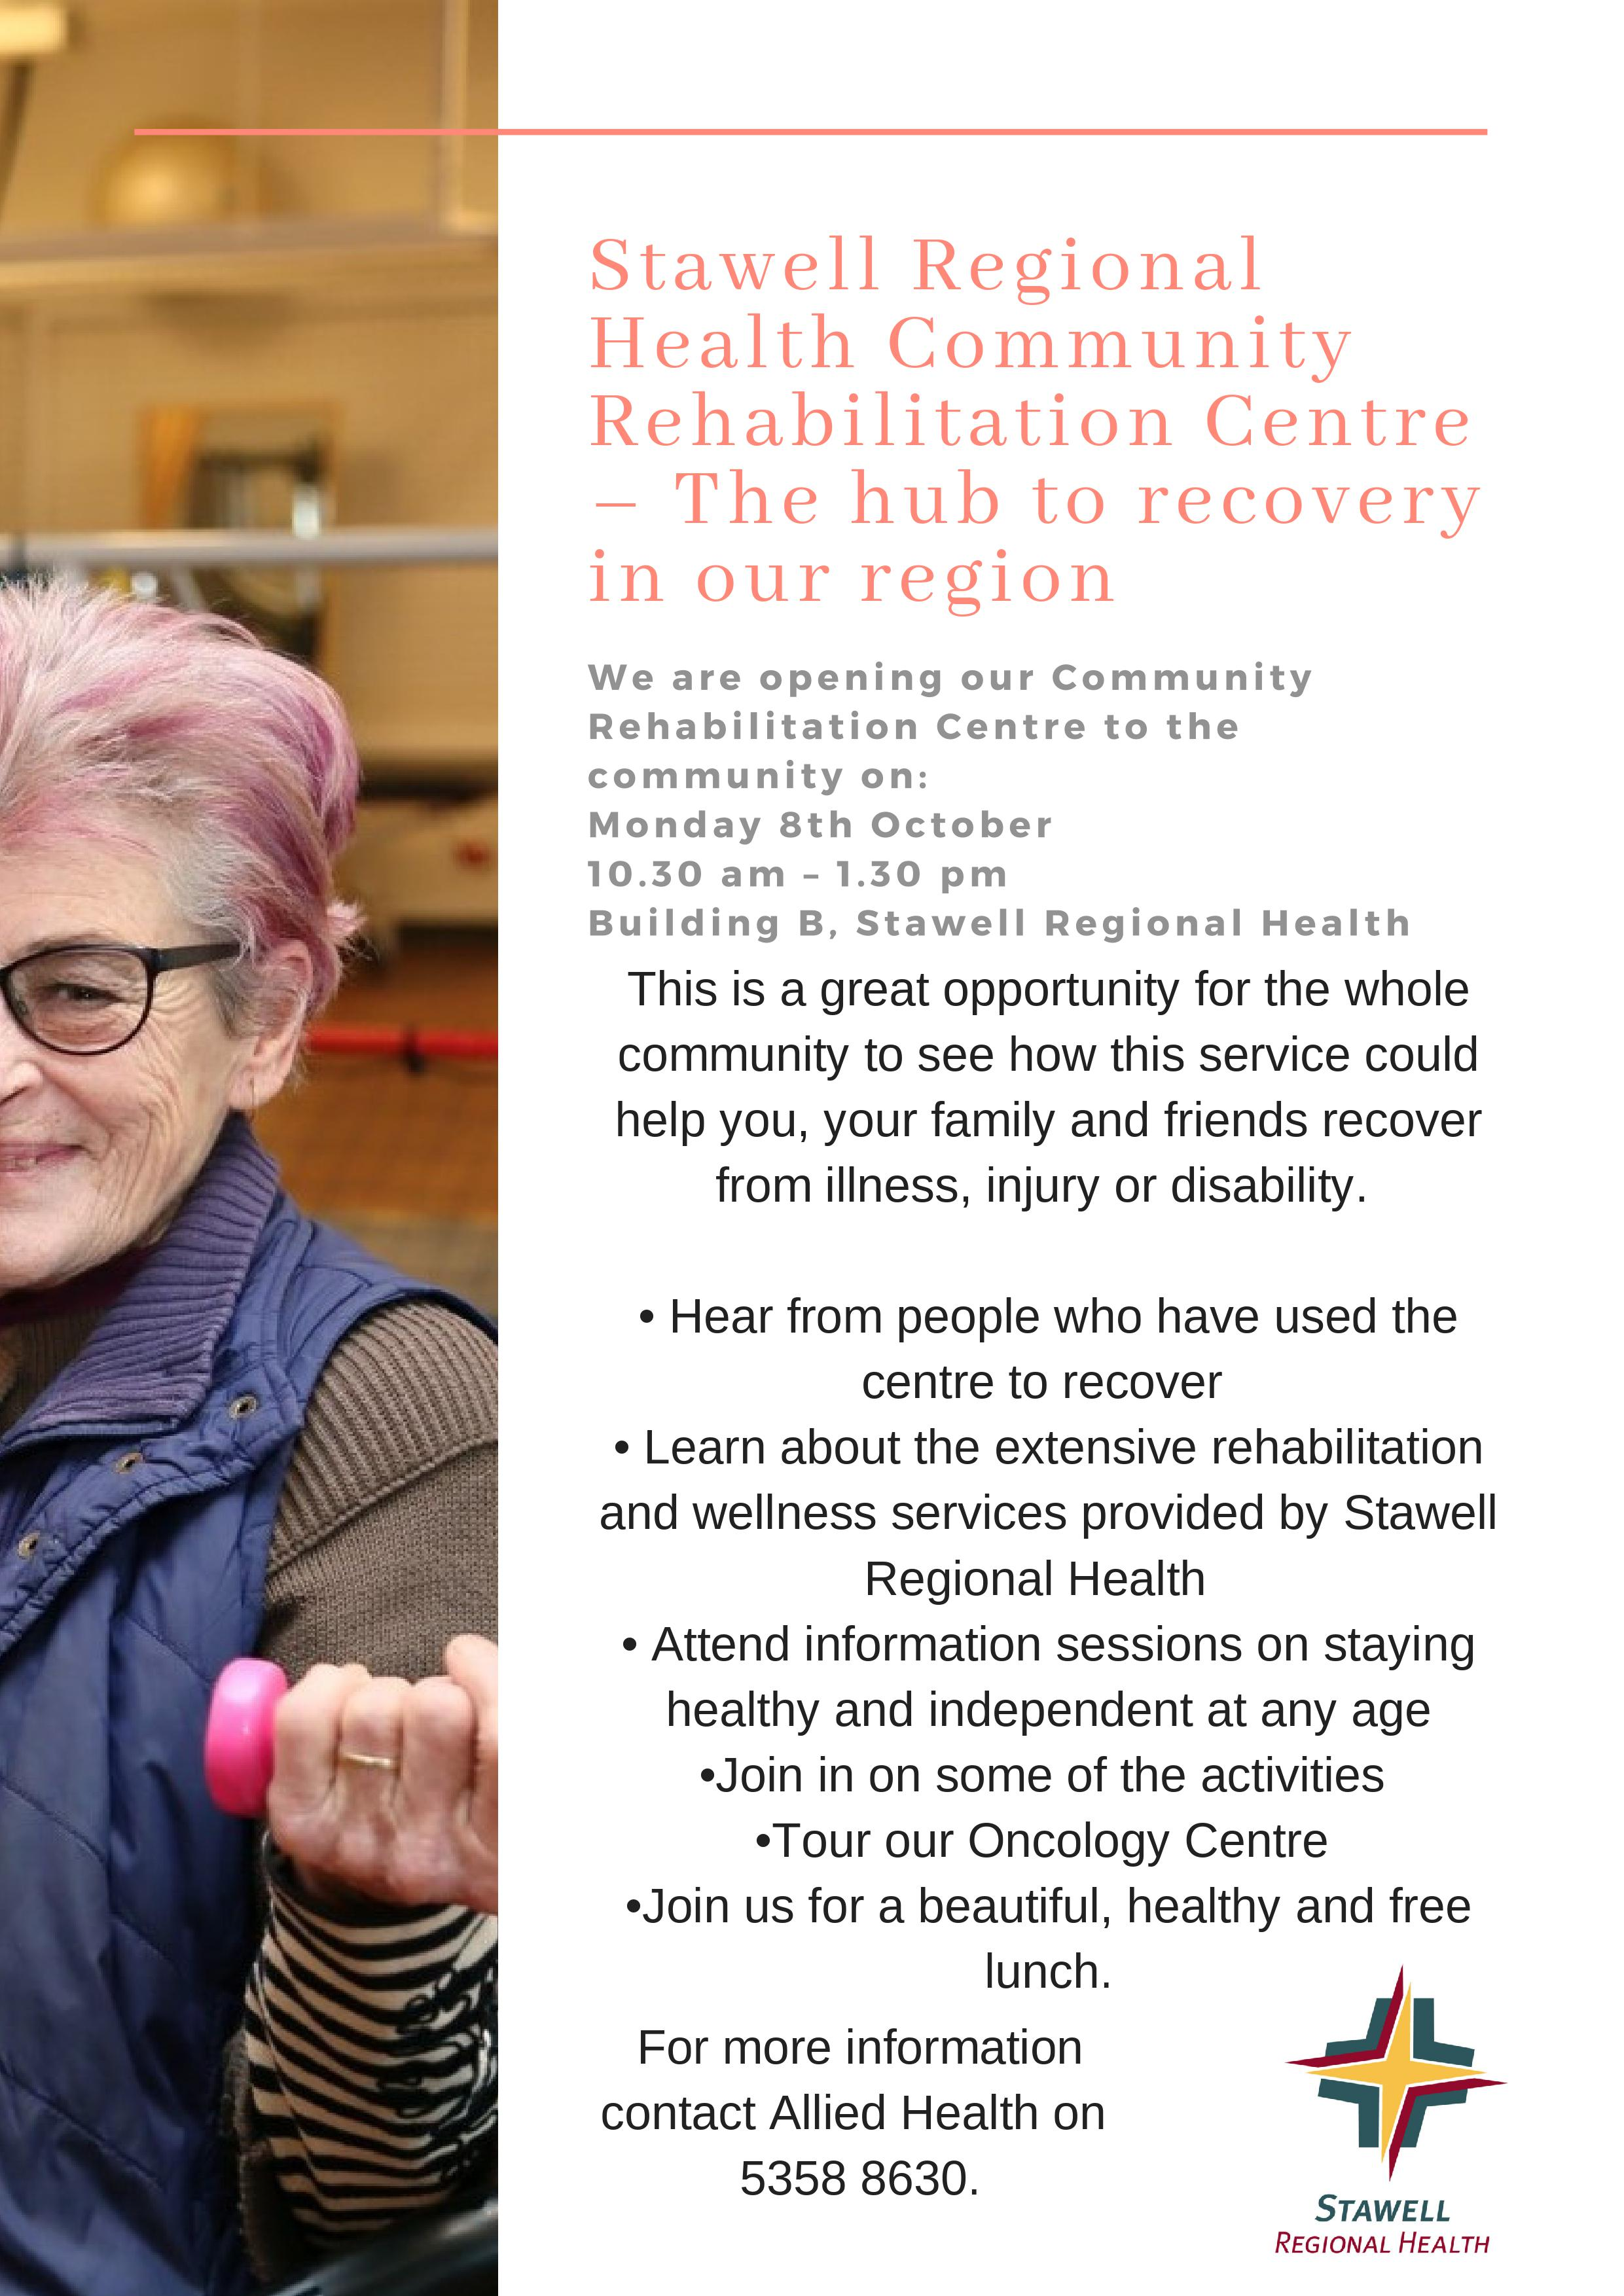 Stawell Regional Health Community Rehabilitation Centre – The hub to recovery in our region We are opening our Communi ty Rehabi l i tat ion Cent re to the communi ty on: Monday 8th October 10. 30 am – 1 . 30 pm Bui lding B, Stawel l Regional Heal th This is a great opportunity for the whole community to see how this service could help you, your family and friends recover from illness, injury or disability. • Hear from people who have used the centre to recover • Learn about the extensive rehabilitation and wellness services provided by Stawell Regional Health • Attend information sessions on staying healthy and independent at any age •Join in on some of the activities •Tour our Oncology Centre •Join us for a beautiful, healthy and free lunch. For more informatio n contact Allied Health on 5358 8630.